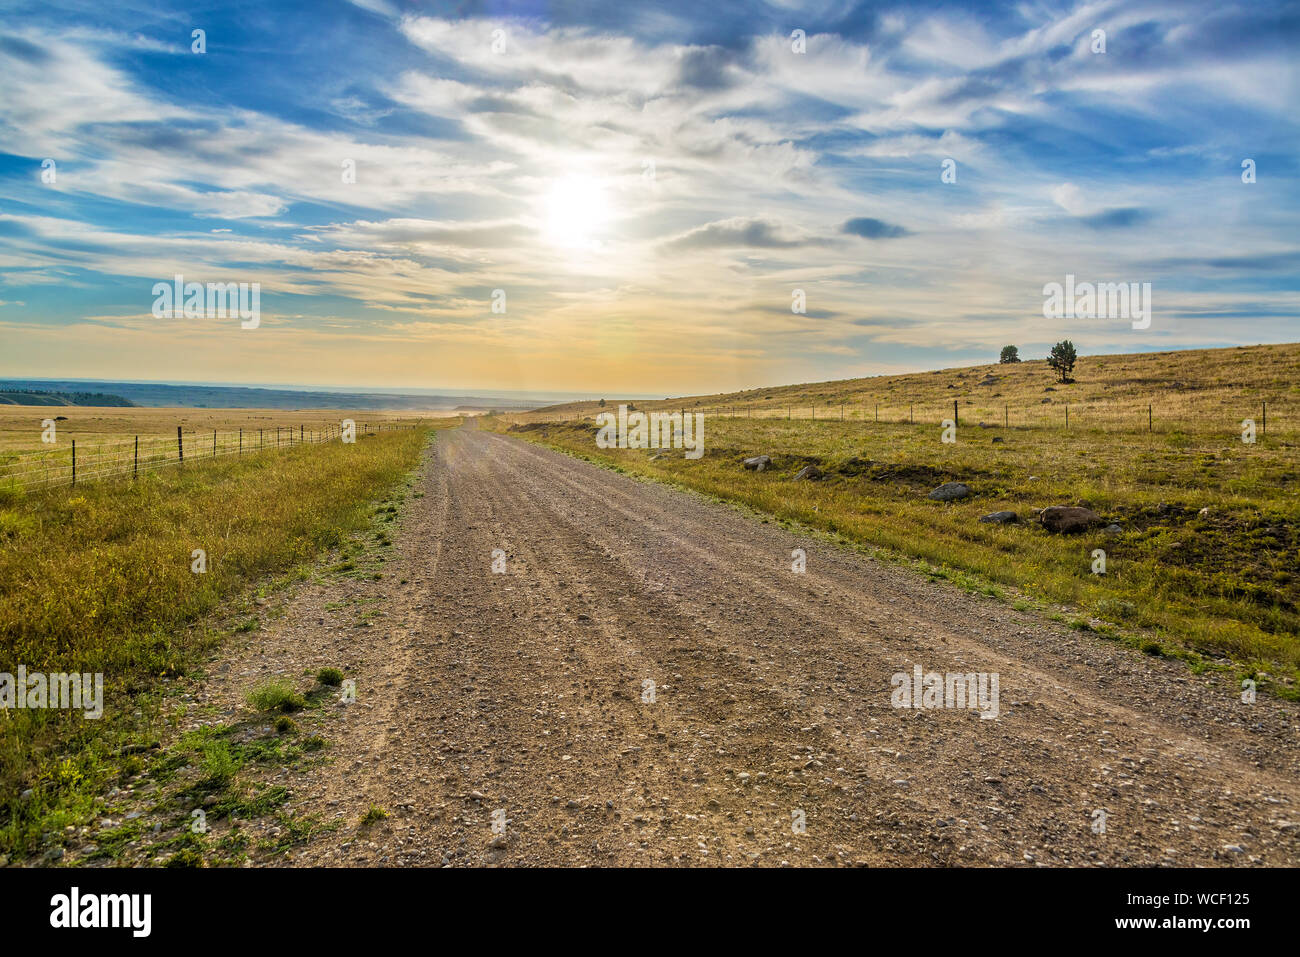 Dirt Road Amidst Landscape Against Sky During Sunset At Bighorn National Forest Stock Photo